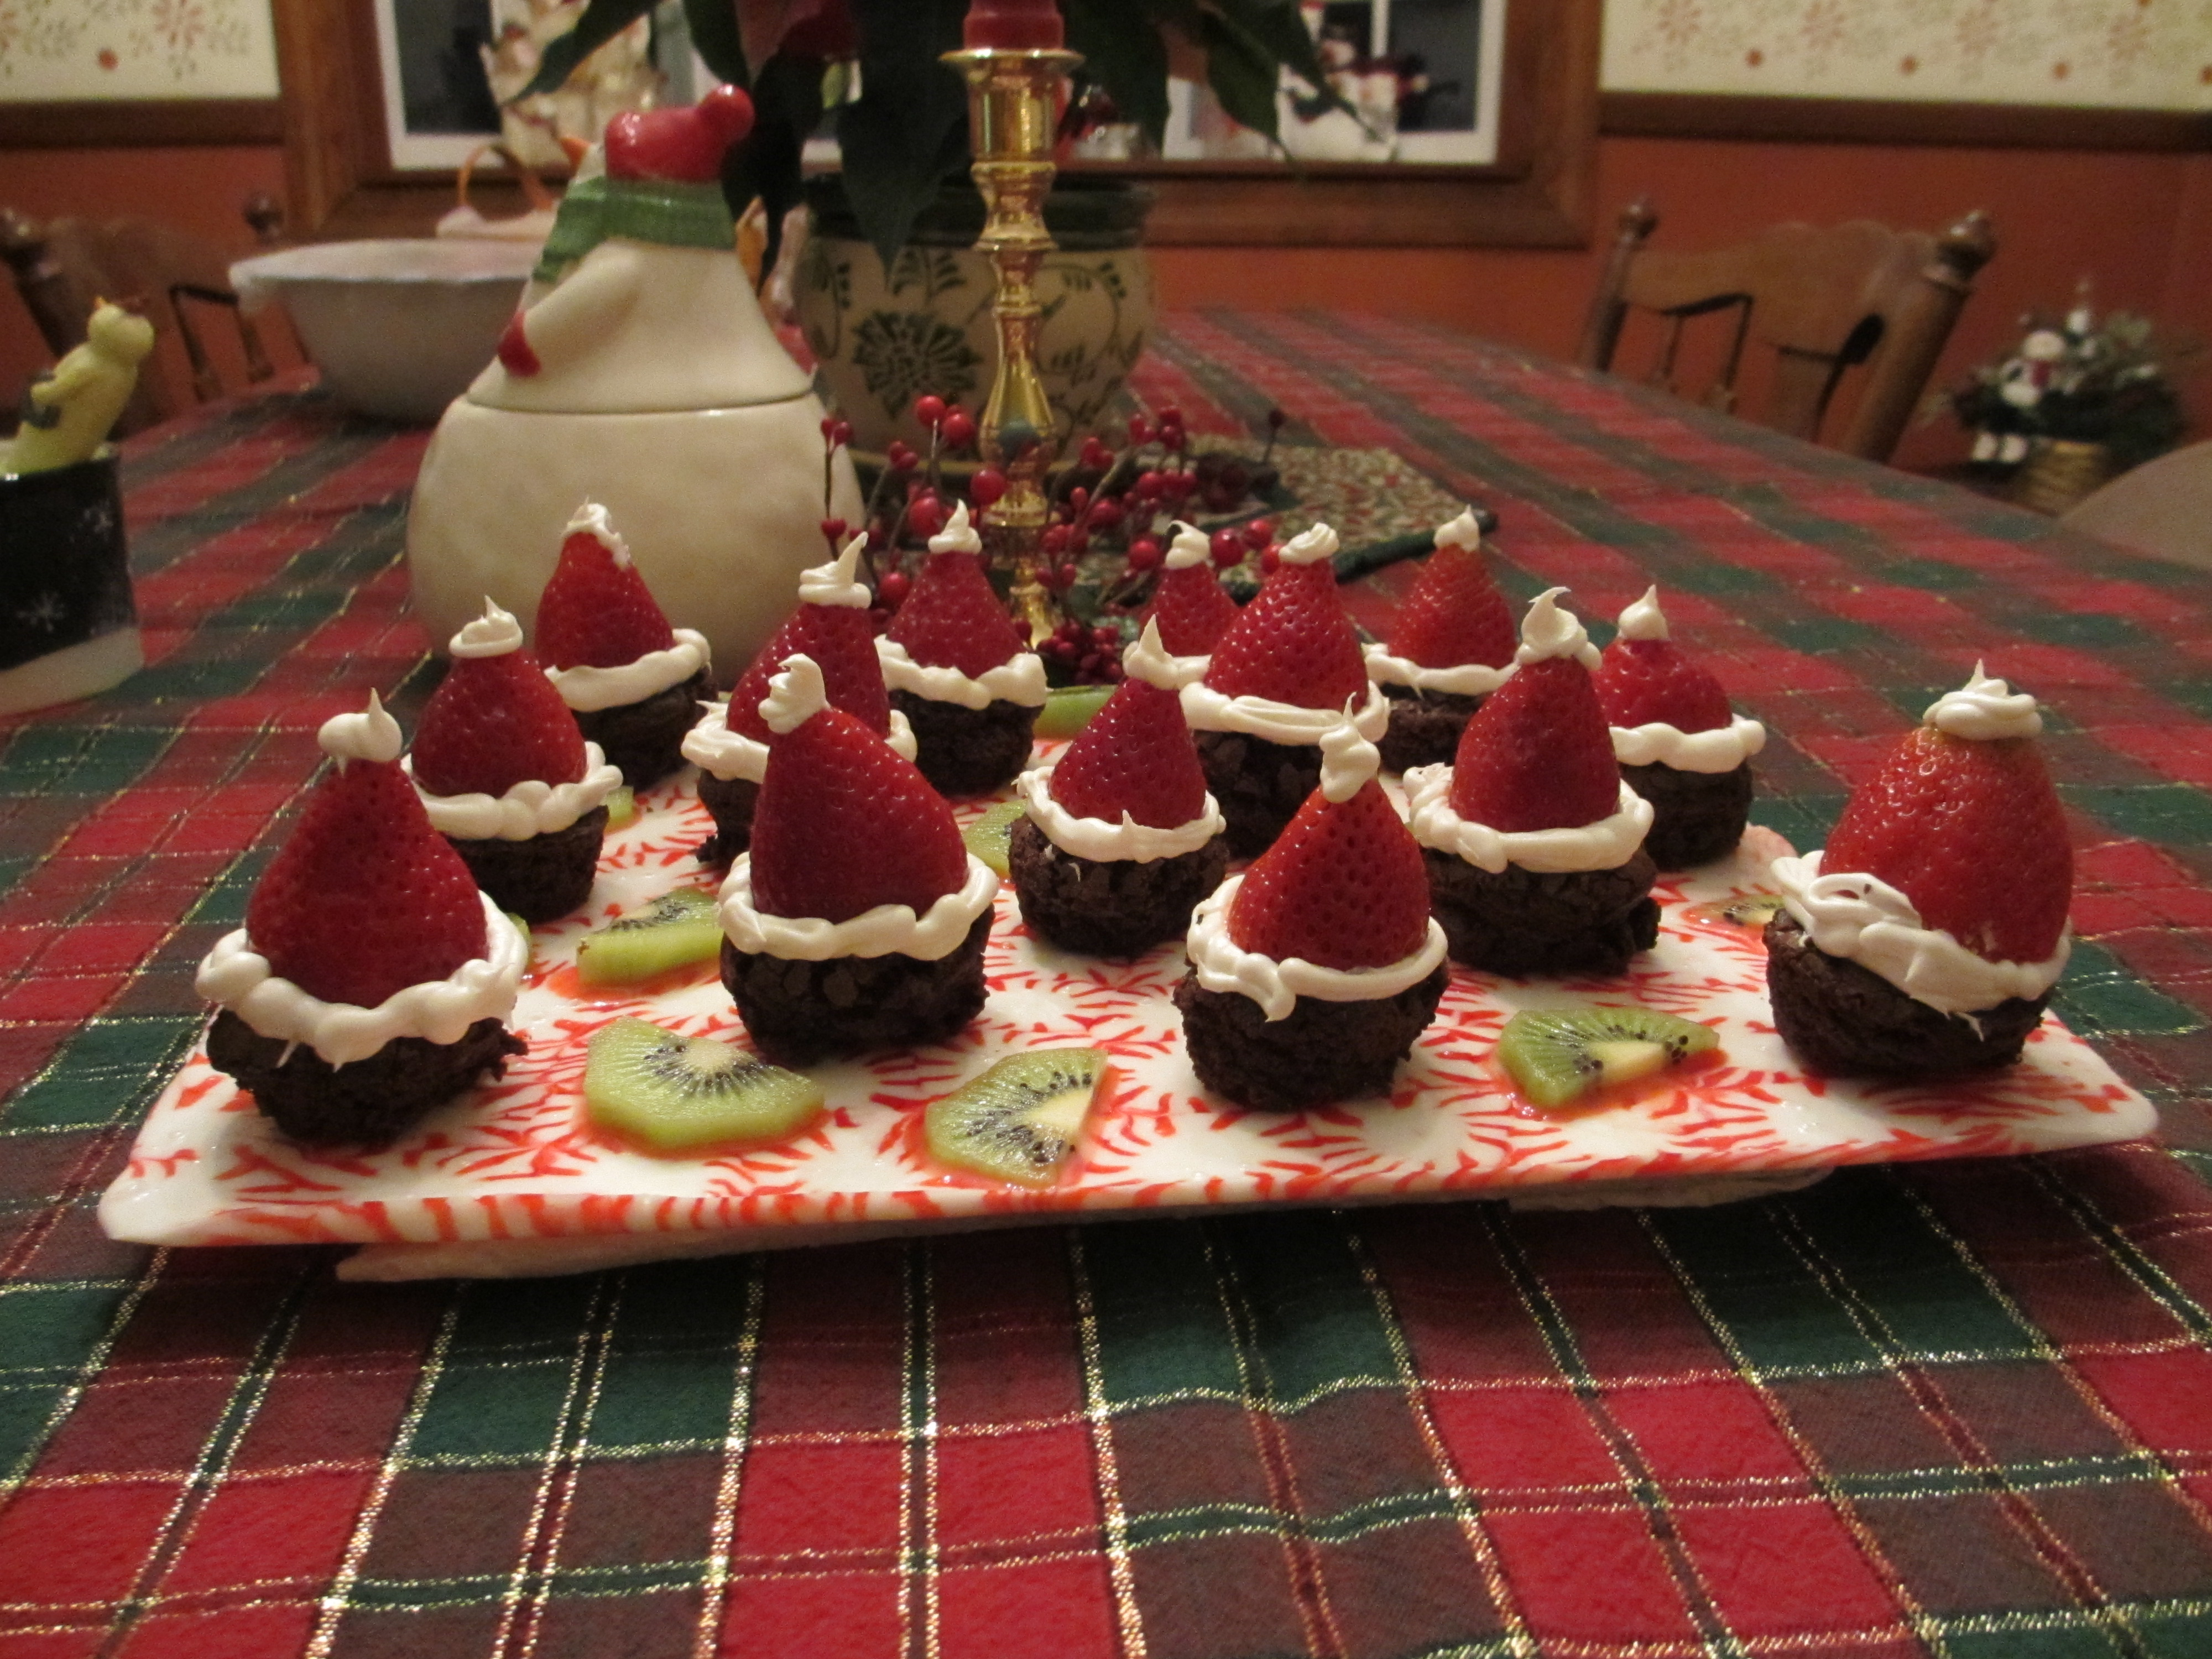 Flossy Office Party Ideas Perth Santa Hat Brownie Bites On Peppermint Serving Tray Party Ideas Look What I Party Ideas ideas Christmas Party Ideas